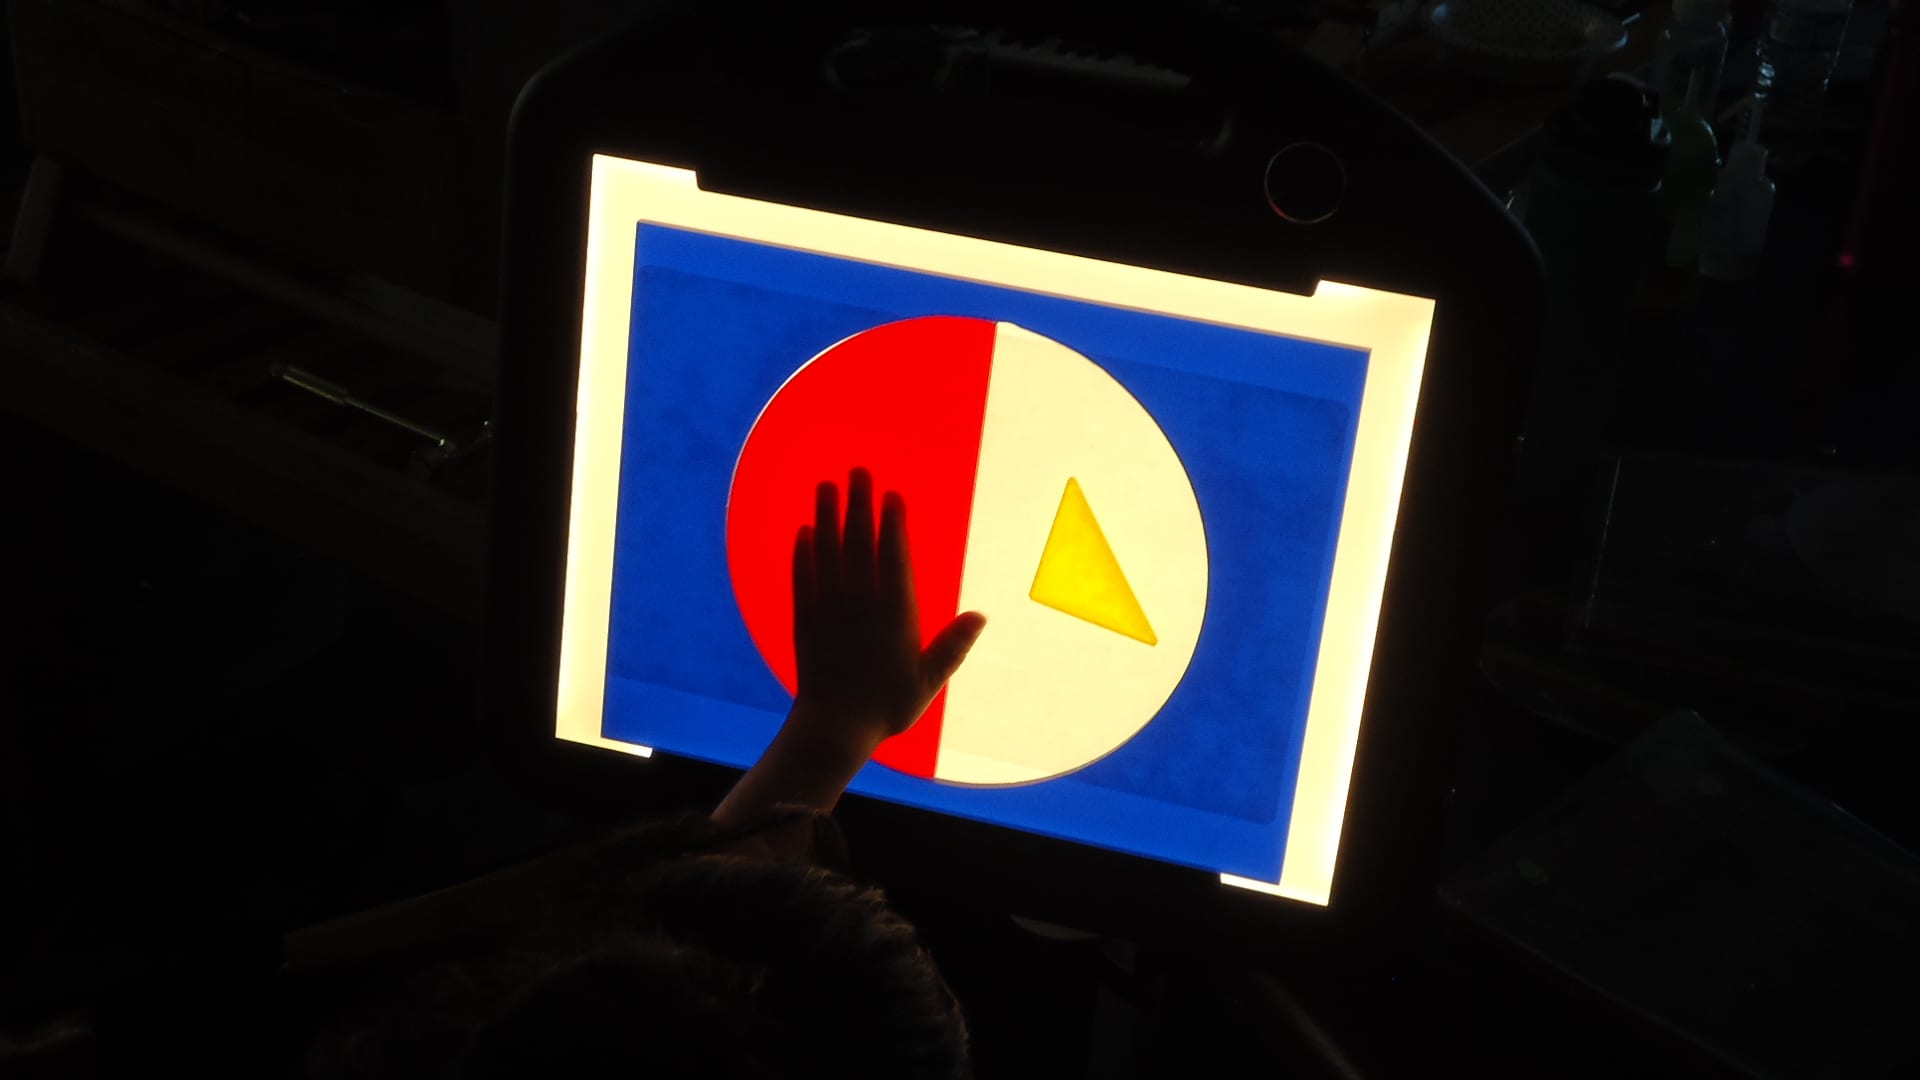 In a darkened room, a child's hand is touching blue plexiglass frame with a circle cut out. In the circle is a red plexiglass semi-circle and yellow triangle. The black case of the LED Mini-Lite Box disappears into the darkness.